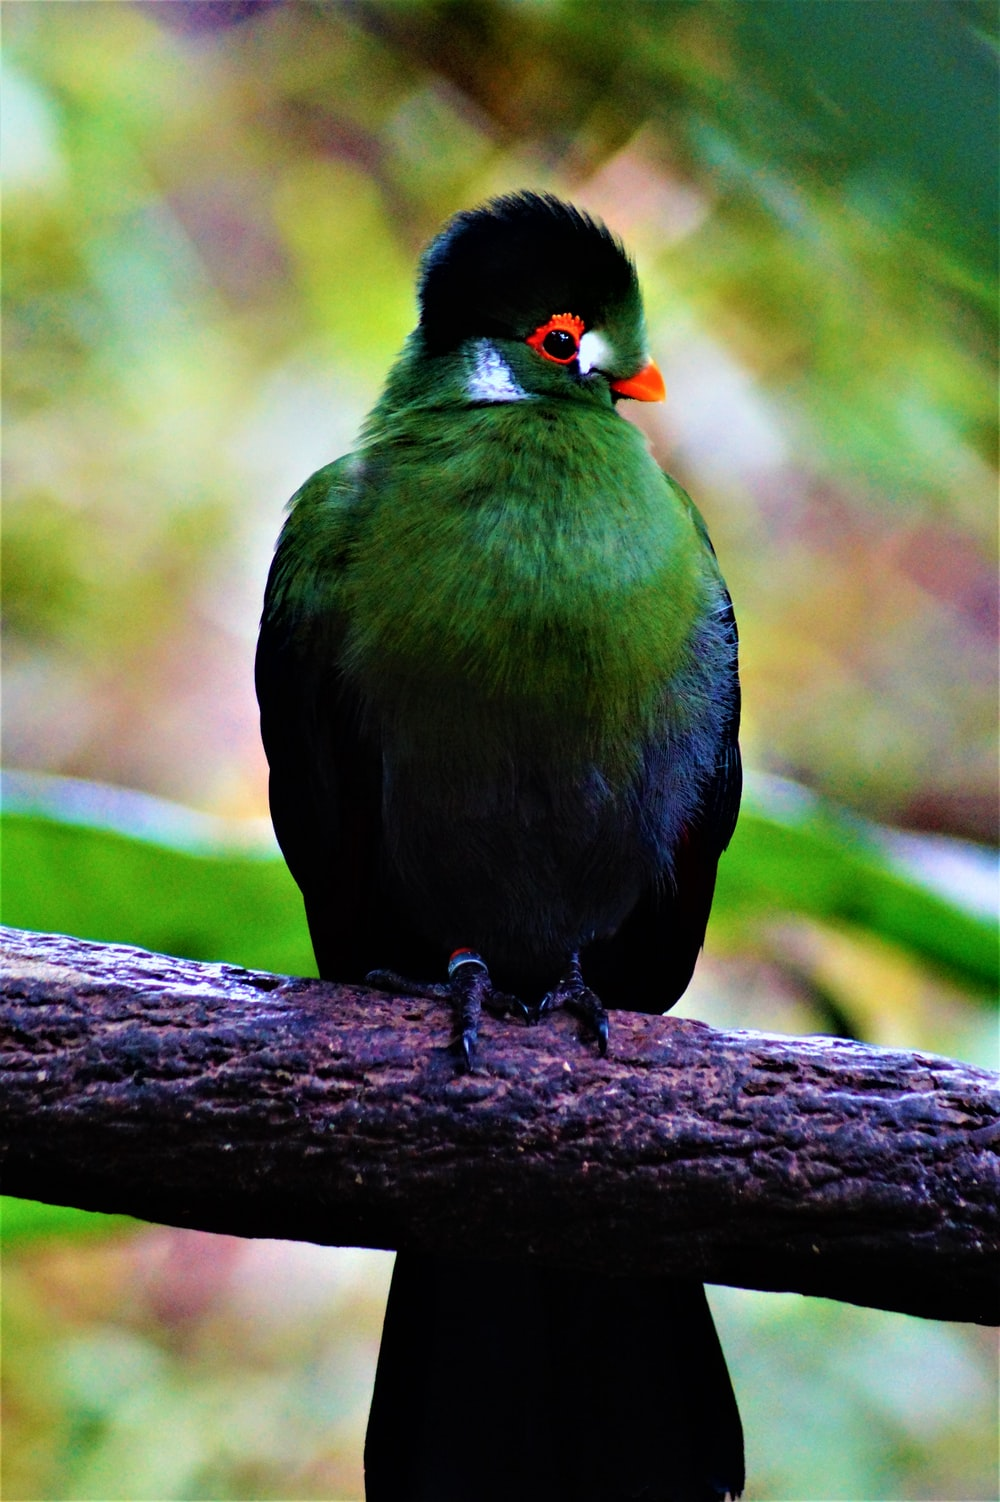 green and black bird on a branch